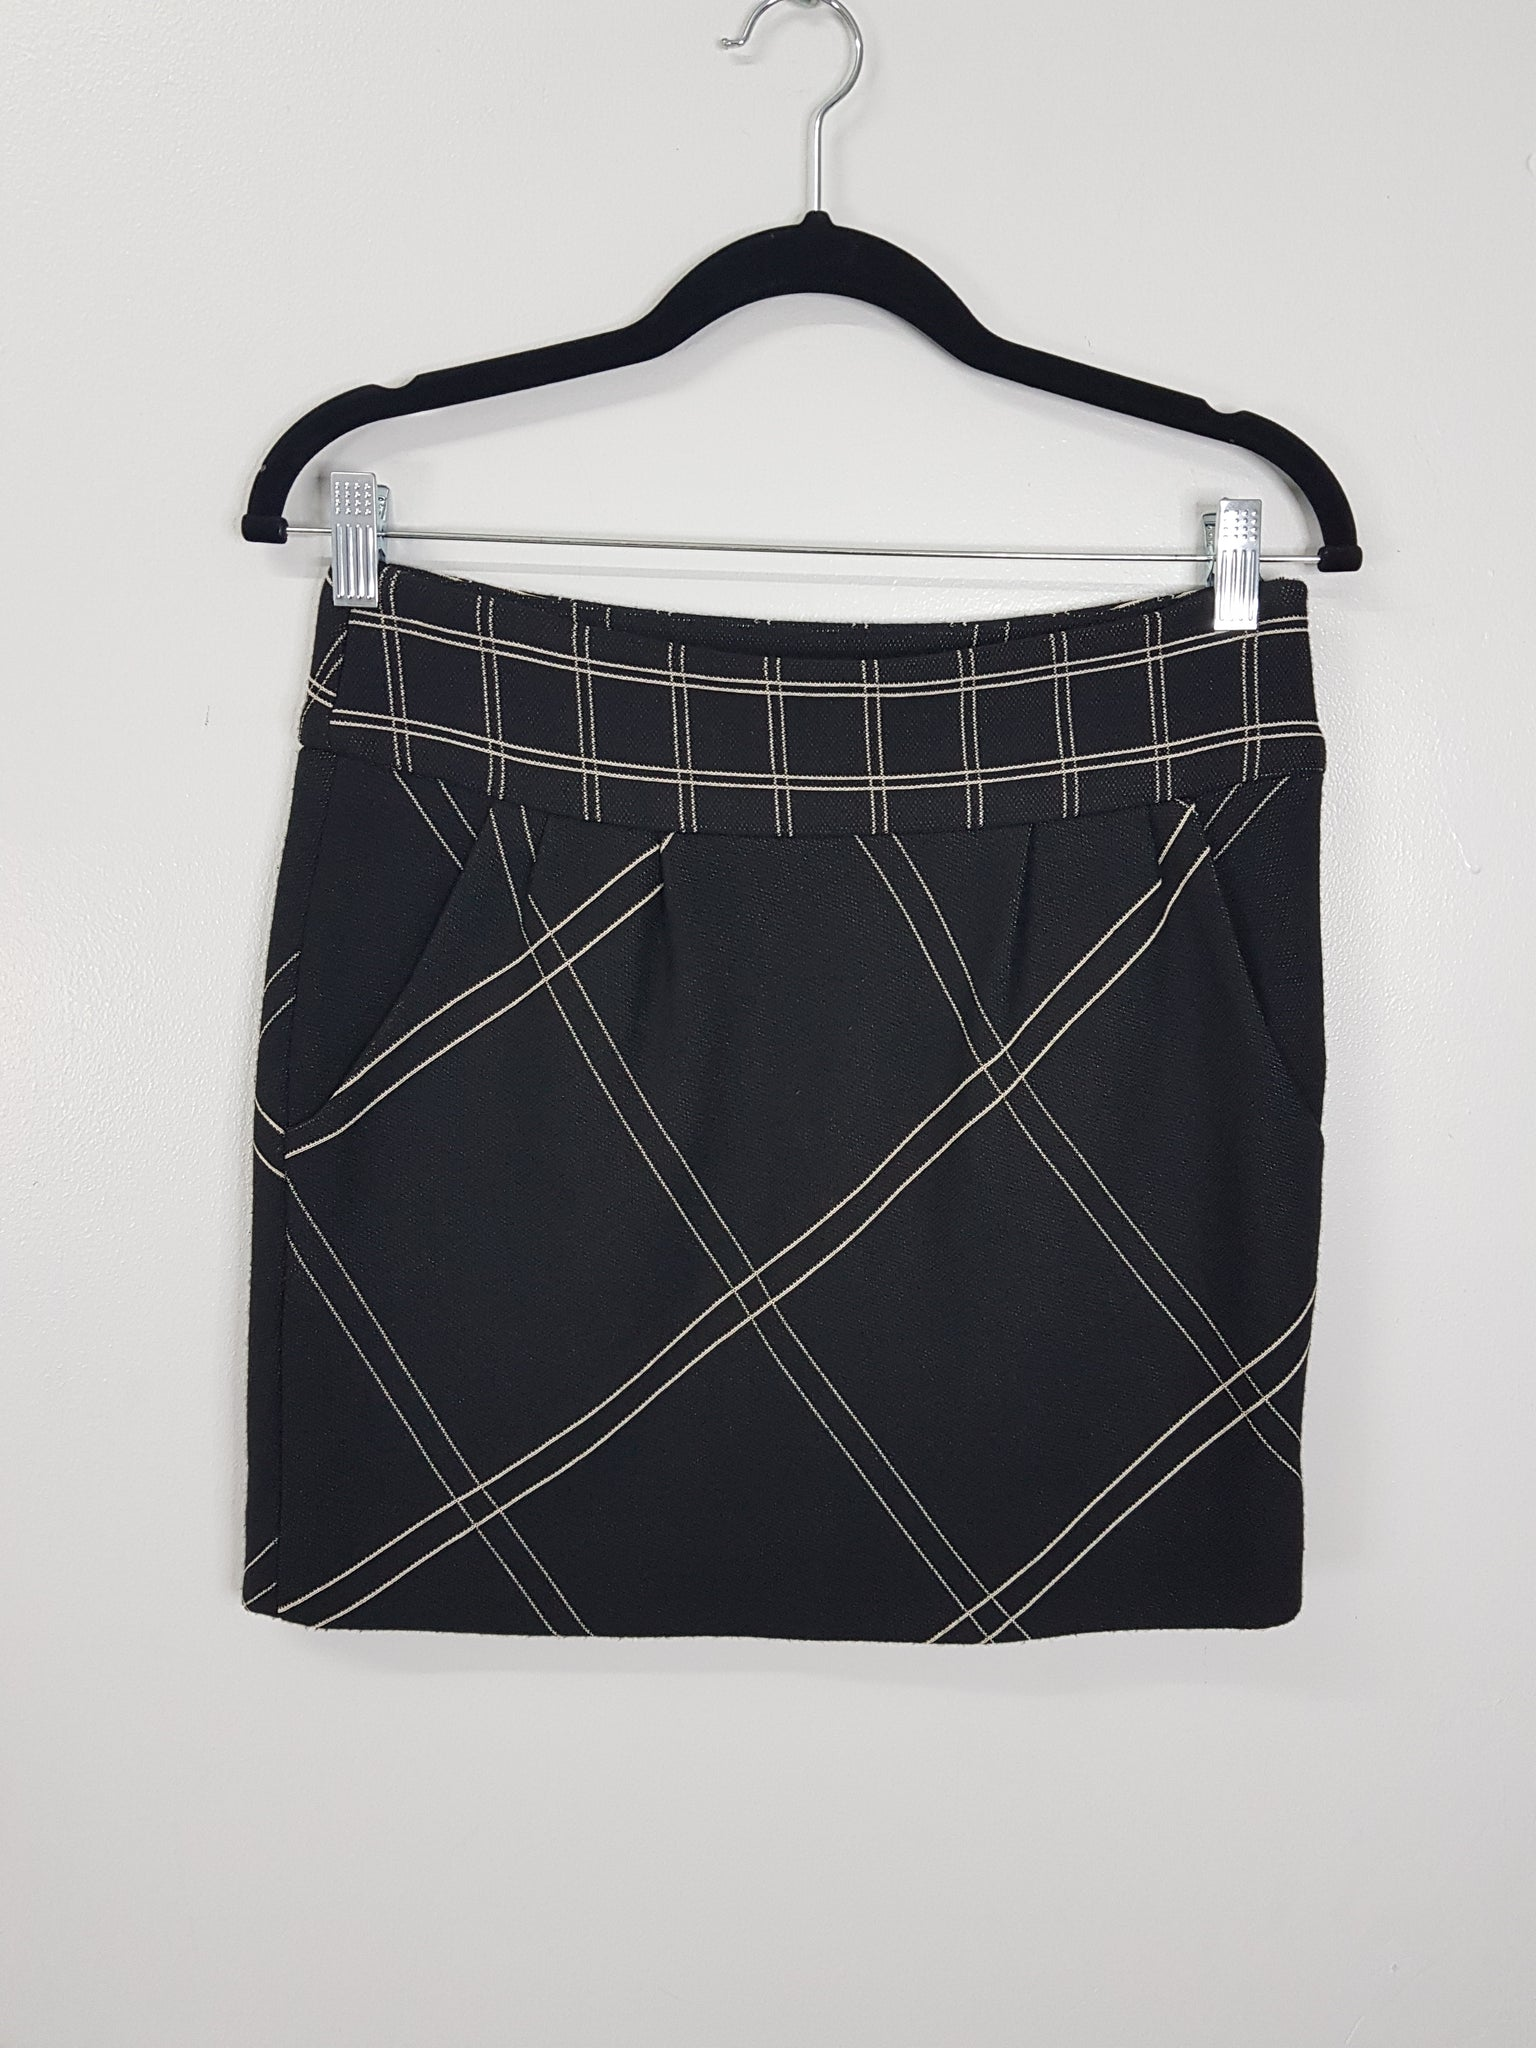 Diane Von Furstenburg Black Skirt with white stripes